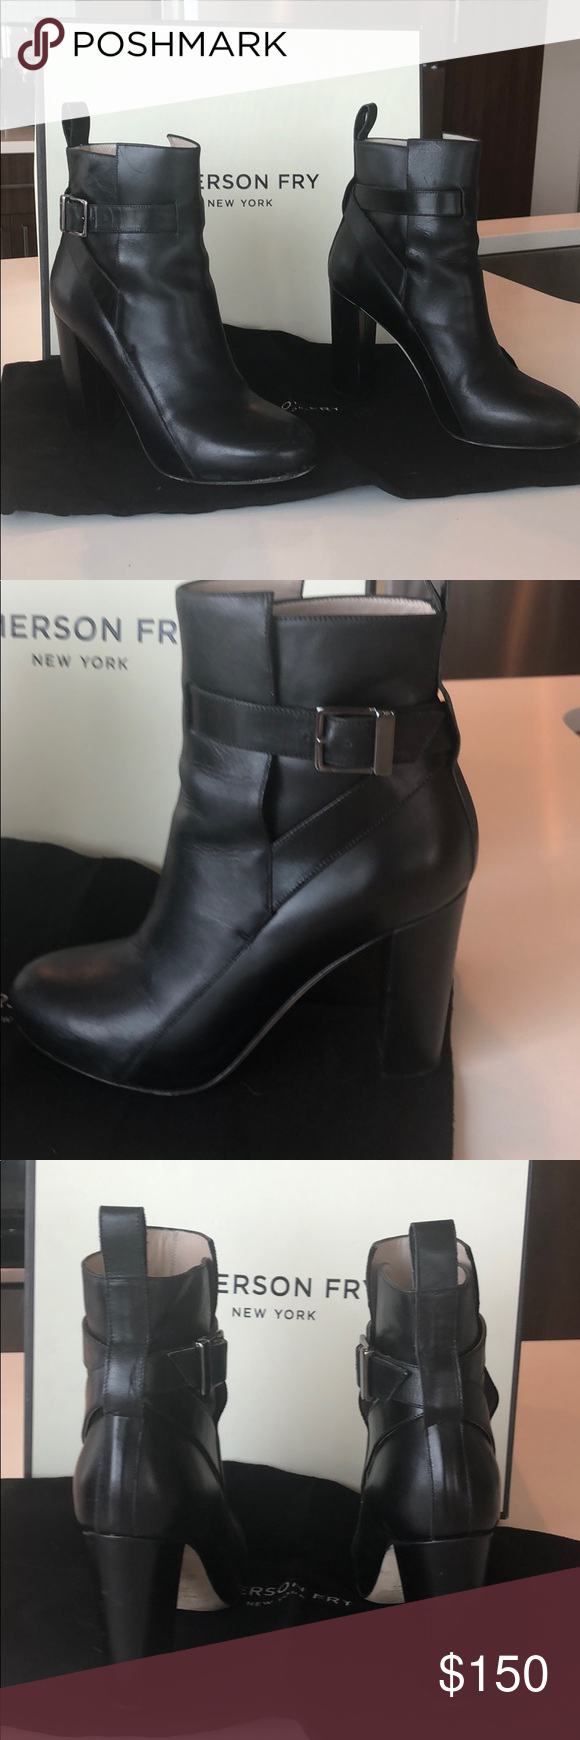 Black platform booties by Emerson Fry Black booties with built-in front platform.Gently used. Emerson Fry Shoes Ankle Boots & Booties #emersonfry Black platform booties by Emerson Fry Black booties with built-in front platform.Gently used. Emerson Fry Shoes Ankle Boots & Booties #emersonfry